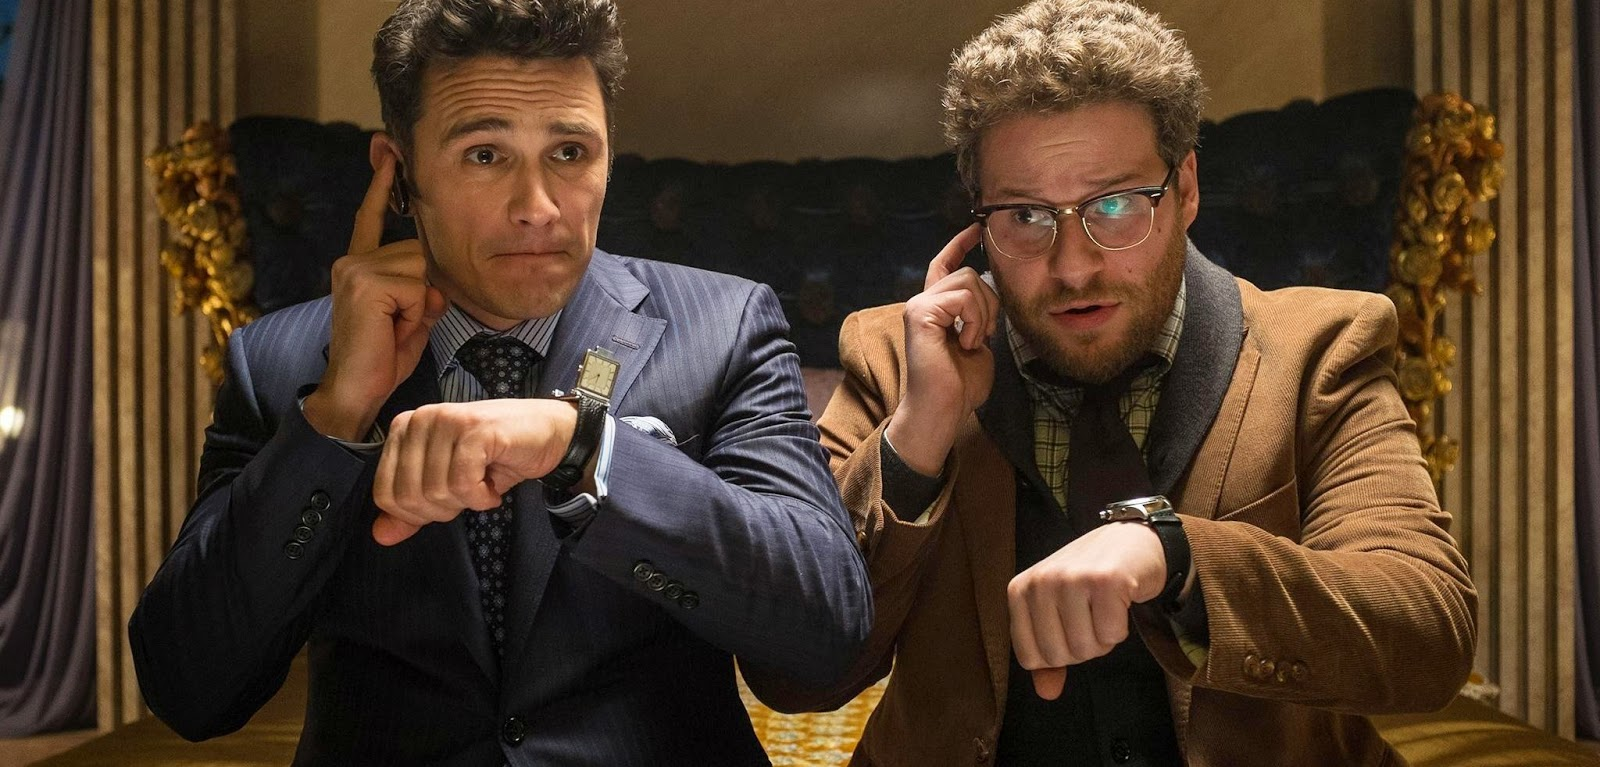 James Franco e Seth Rogen no trailer final legendado da comédia A Entrevista